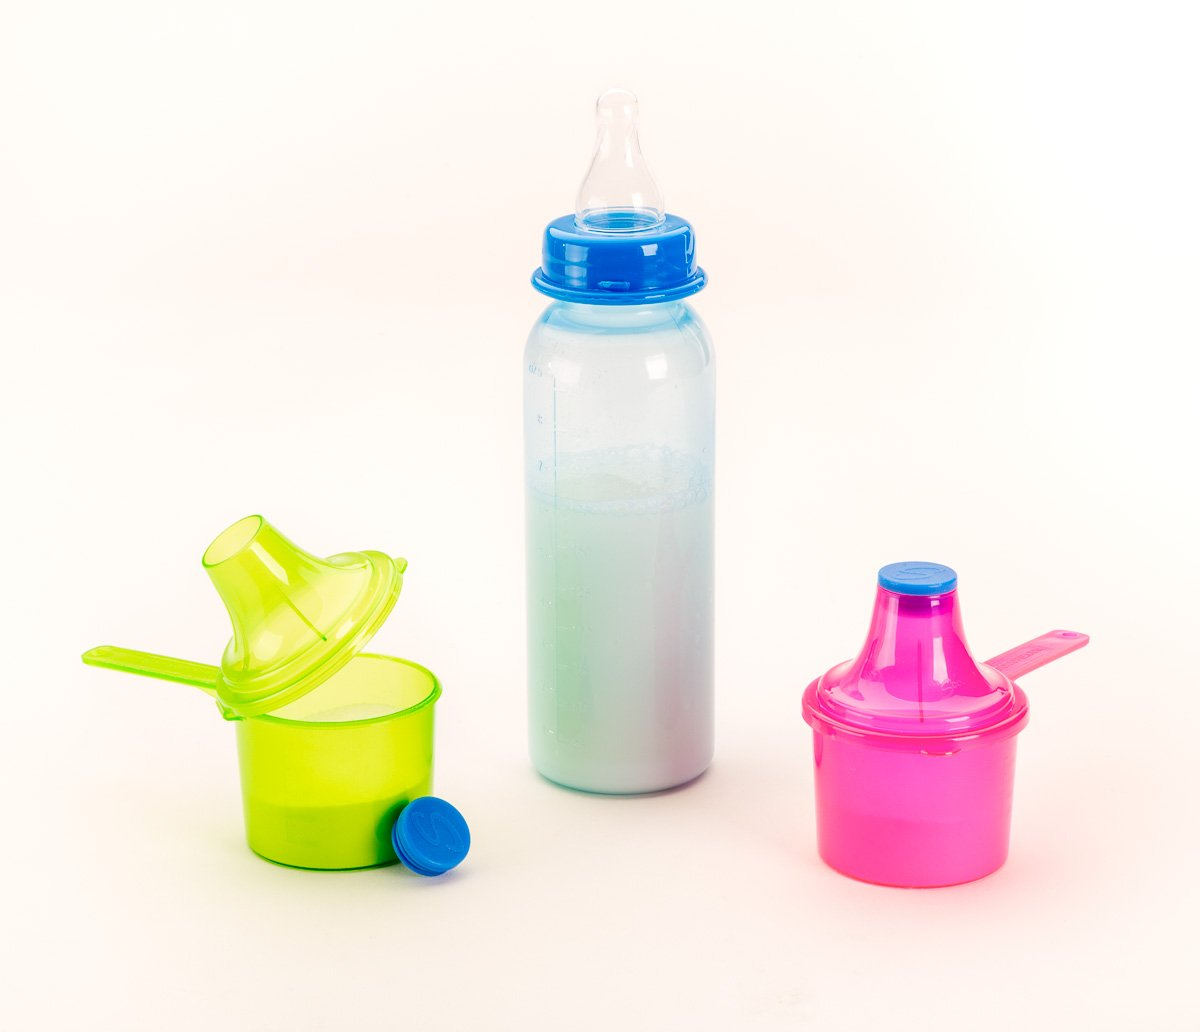 Scoopie 3 Pack Portable Baby Formula Dispenser - #1 Mommy Approved BPA Free Scoop with Funnel Powder Container for Baby Bottles and Water Bottles - (Blue)